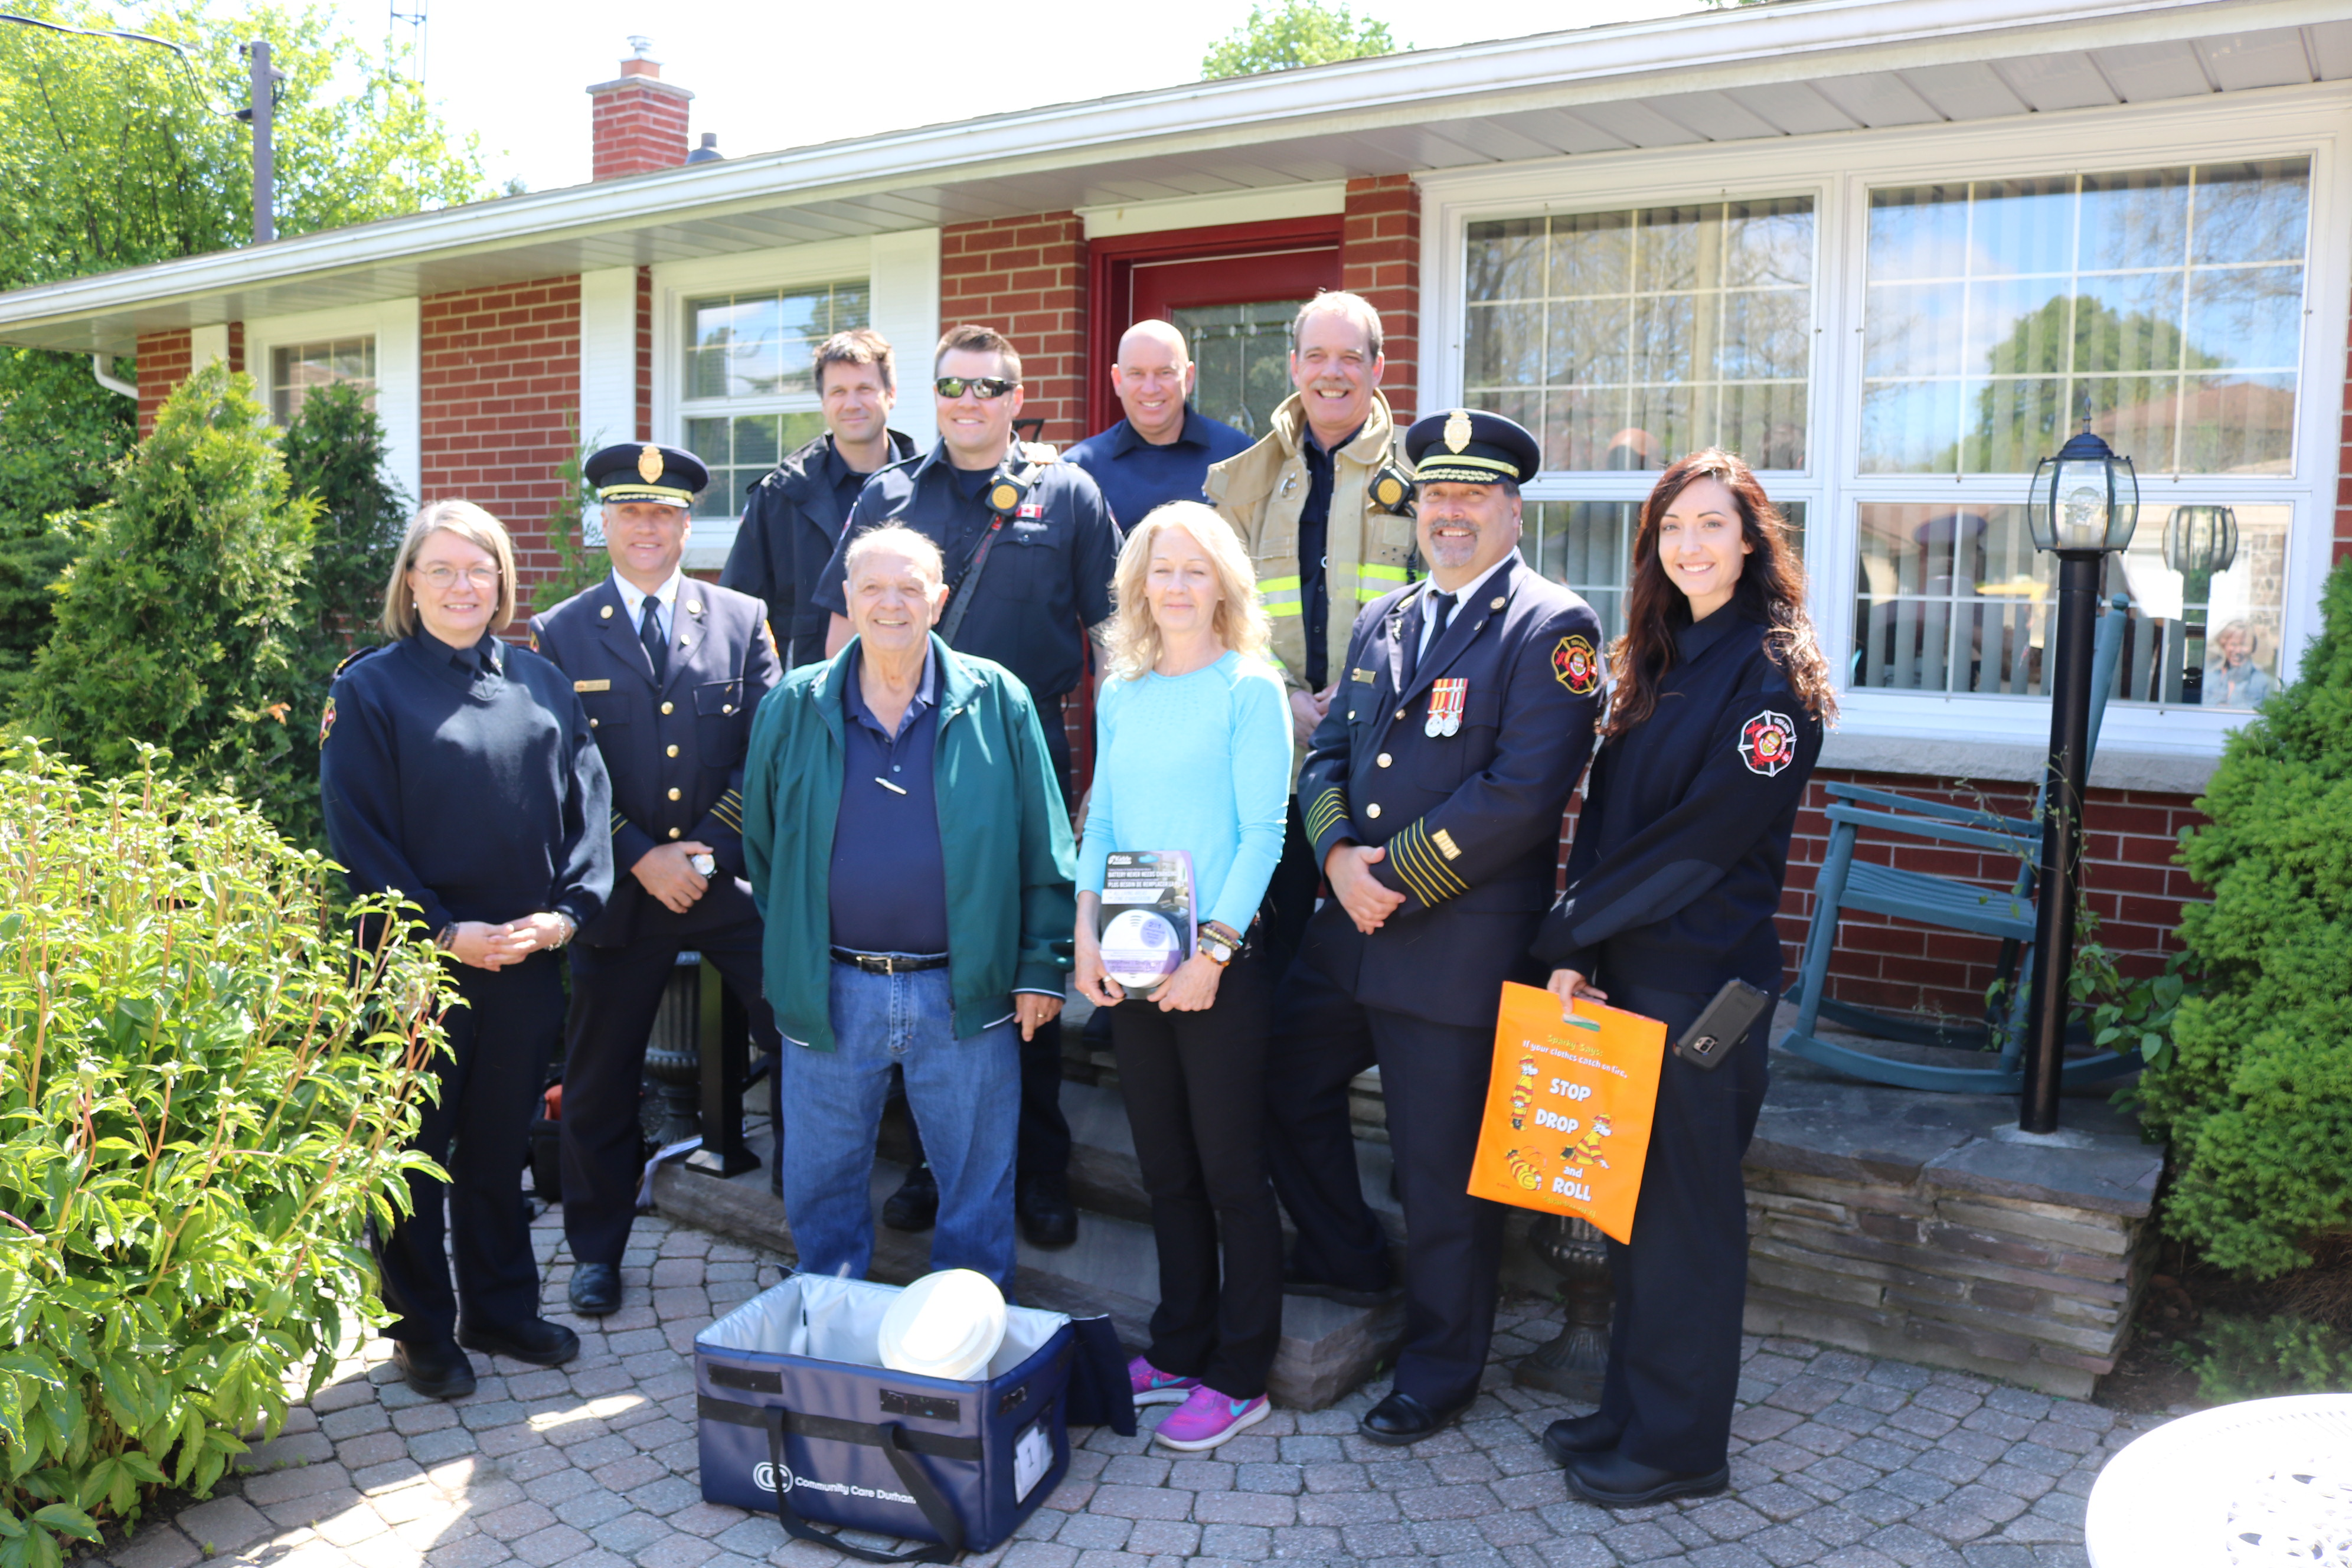 Oshawa Fire Services is delivering Meals on Wheels along with fire safety reminders for the month of June during Seniors Month.